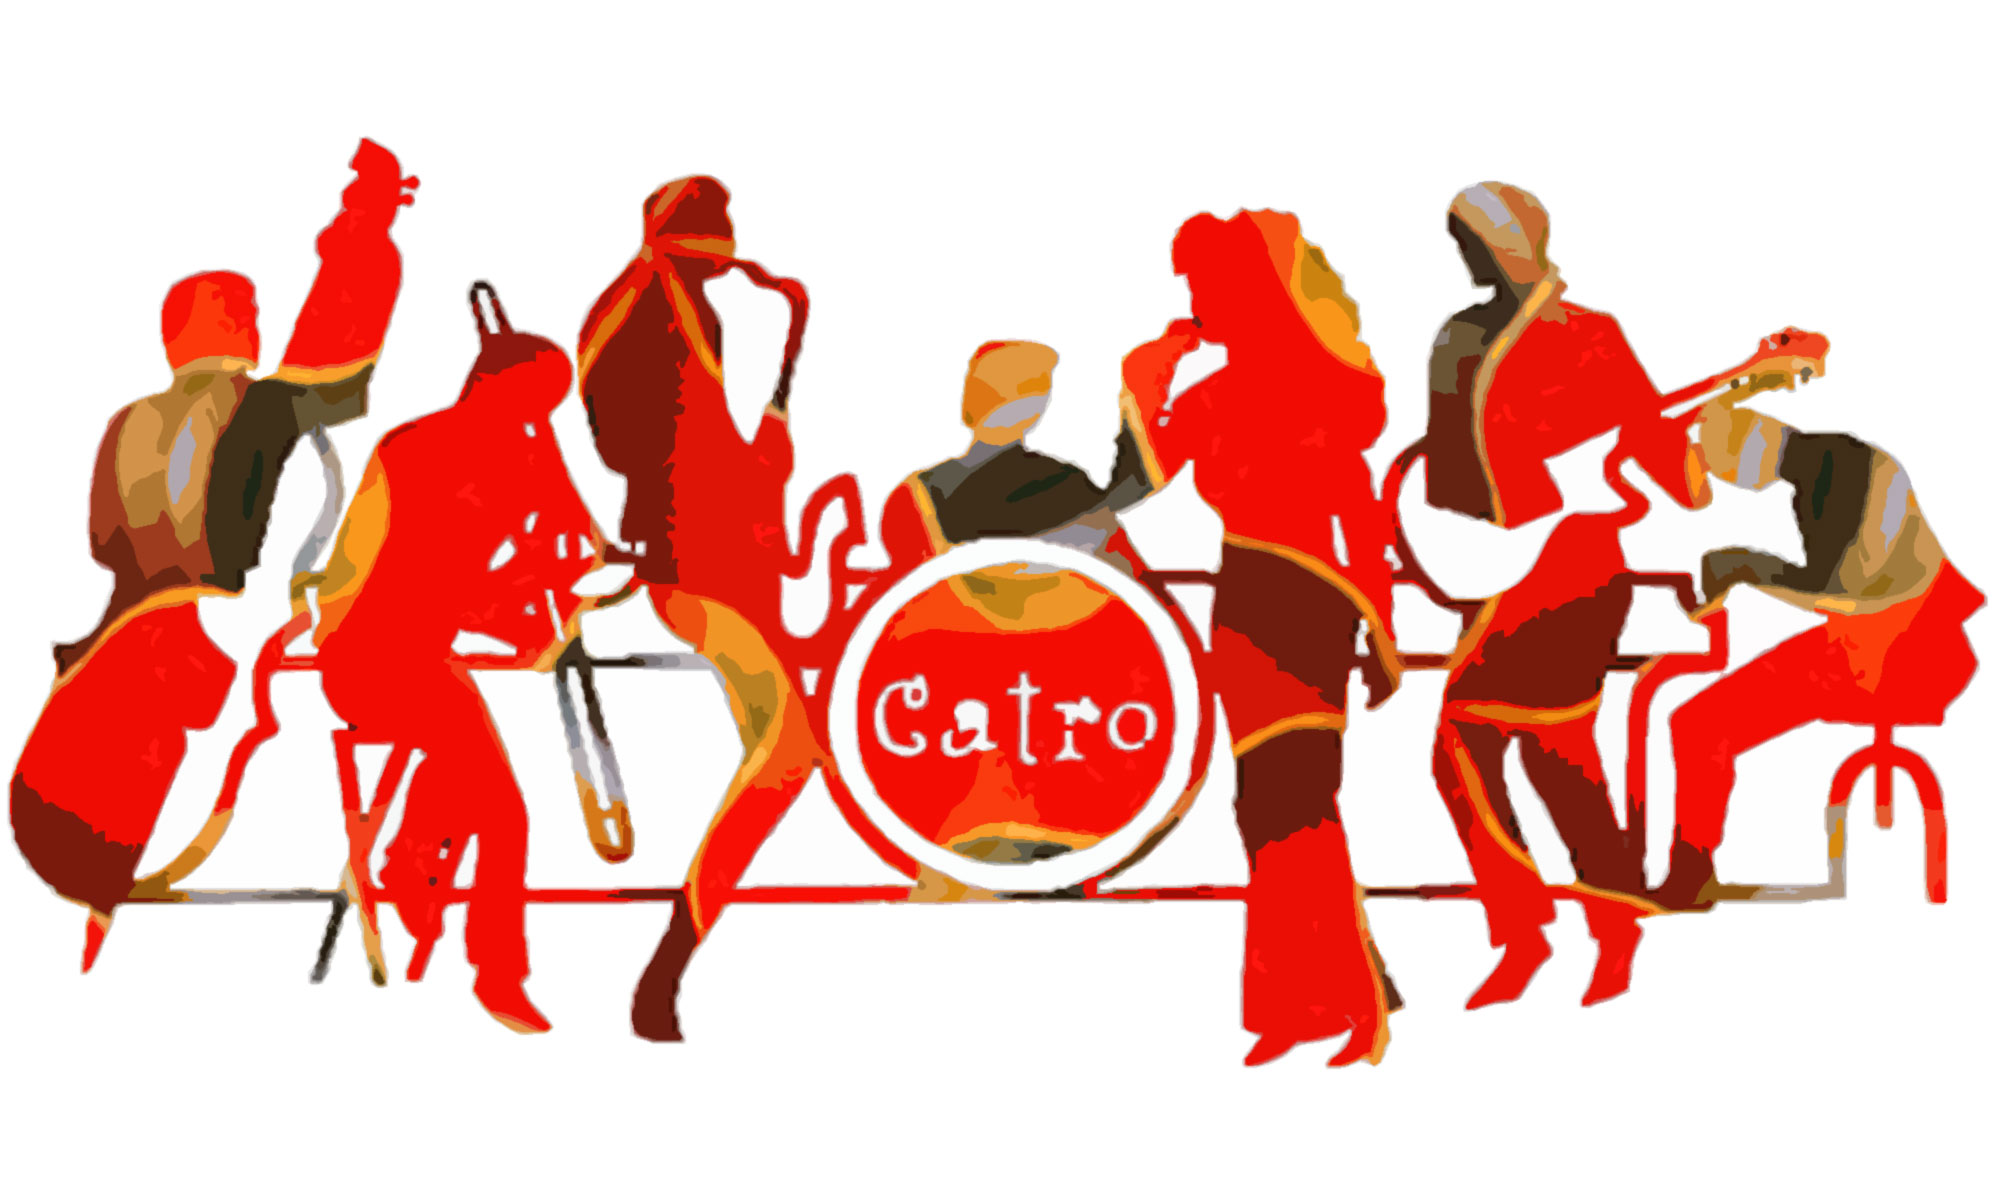 the Catro Band - Pittsburgh Jazz & Dance Band for Parties & Weddings